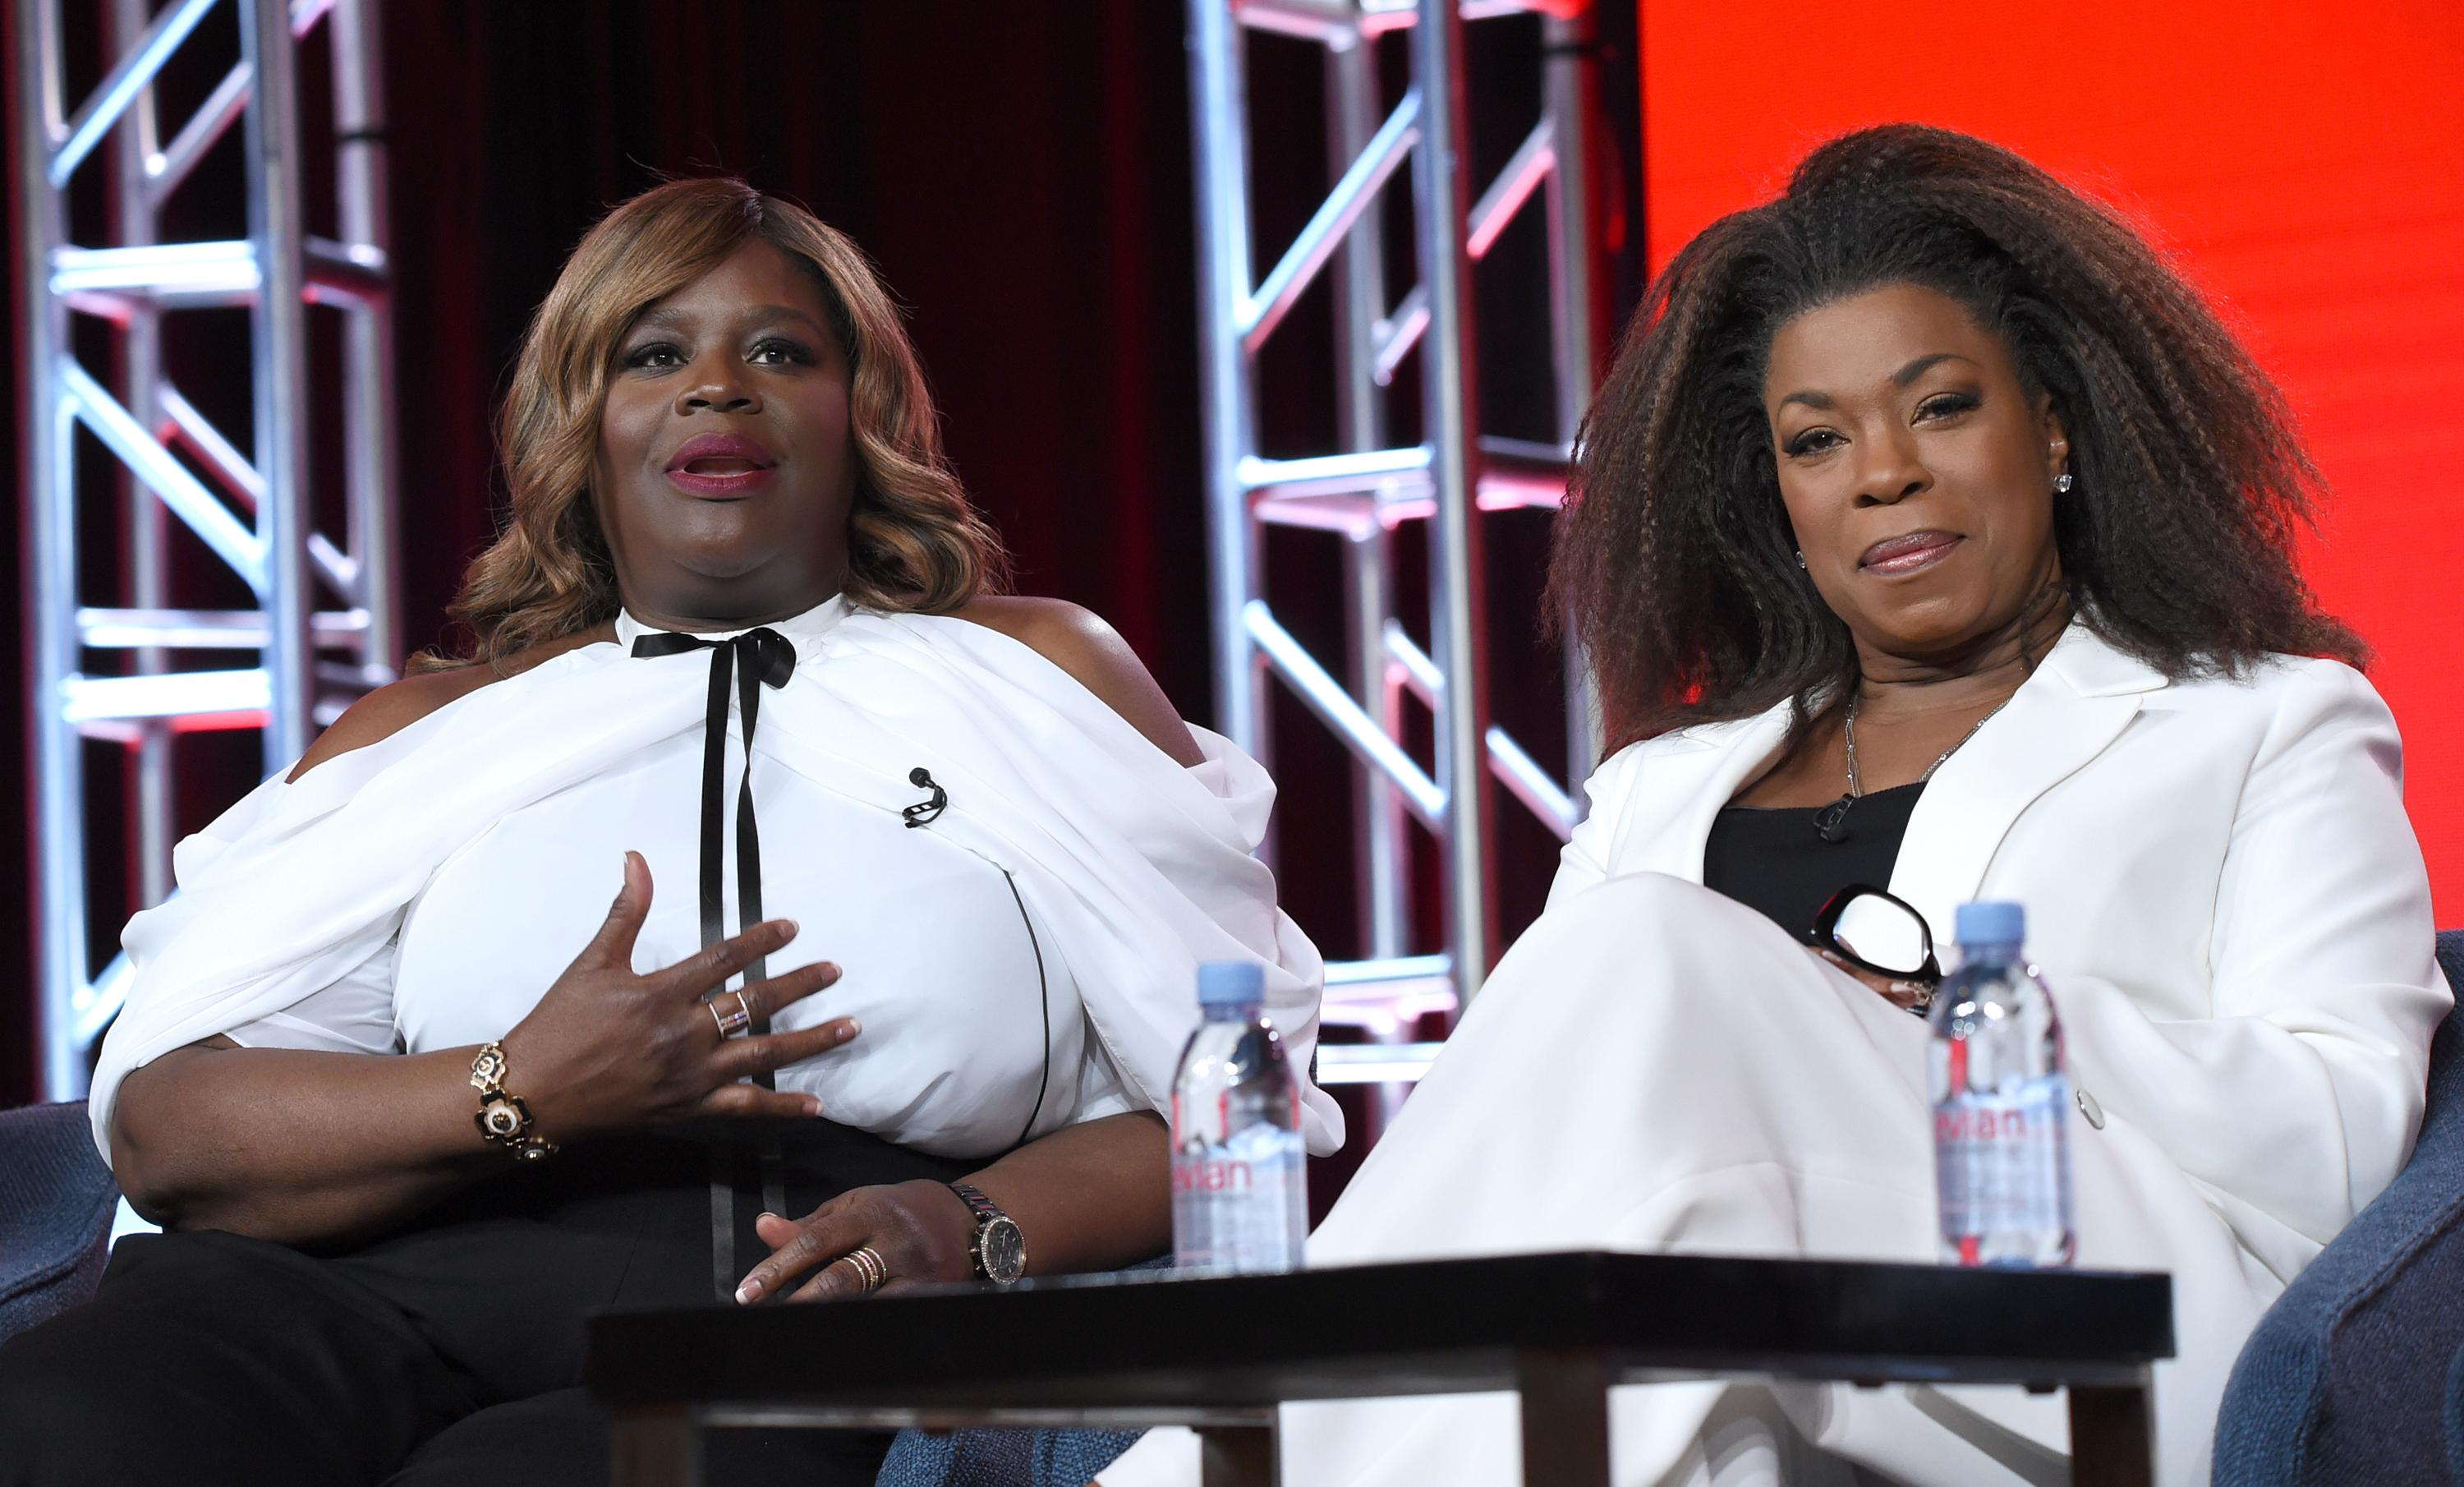 Retta, left, and Lorraine Toussaint participate in the Women of Drama panel during the NBCUniversal TCA Winter Press Tour on Tuesday, Jan. 29, 2019, in Pasadena, Calif. (Photo by Richard Shotwell/Invision/AP)